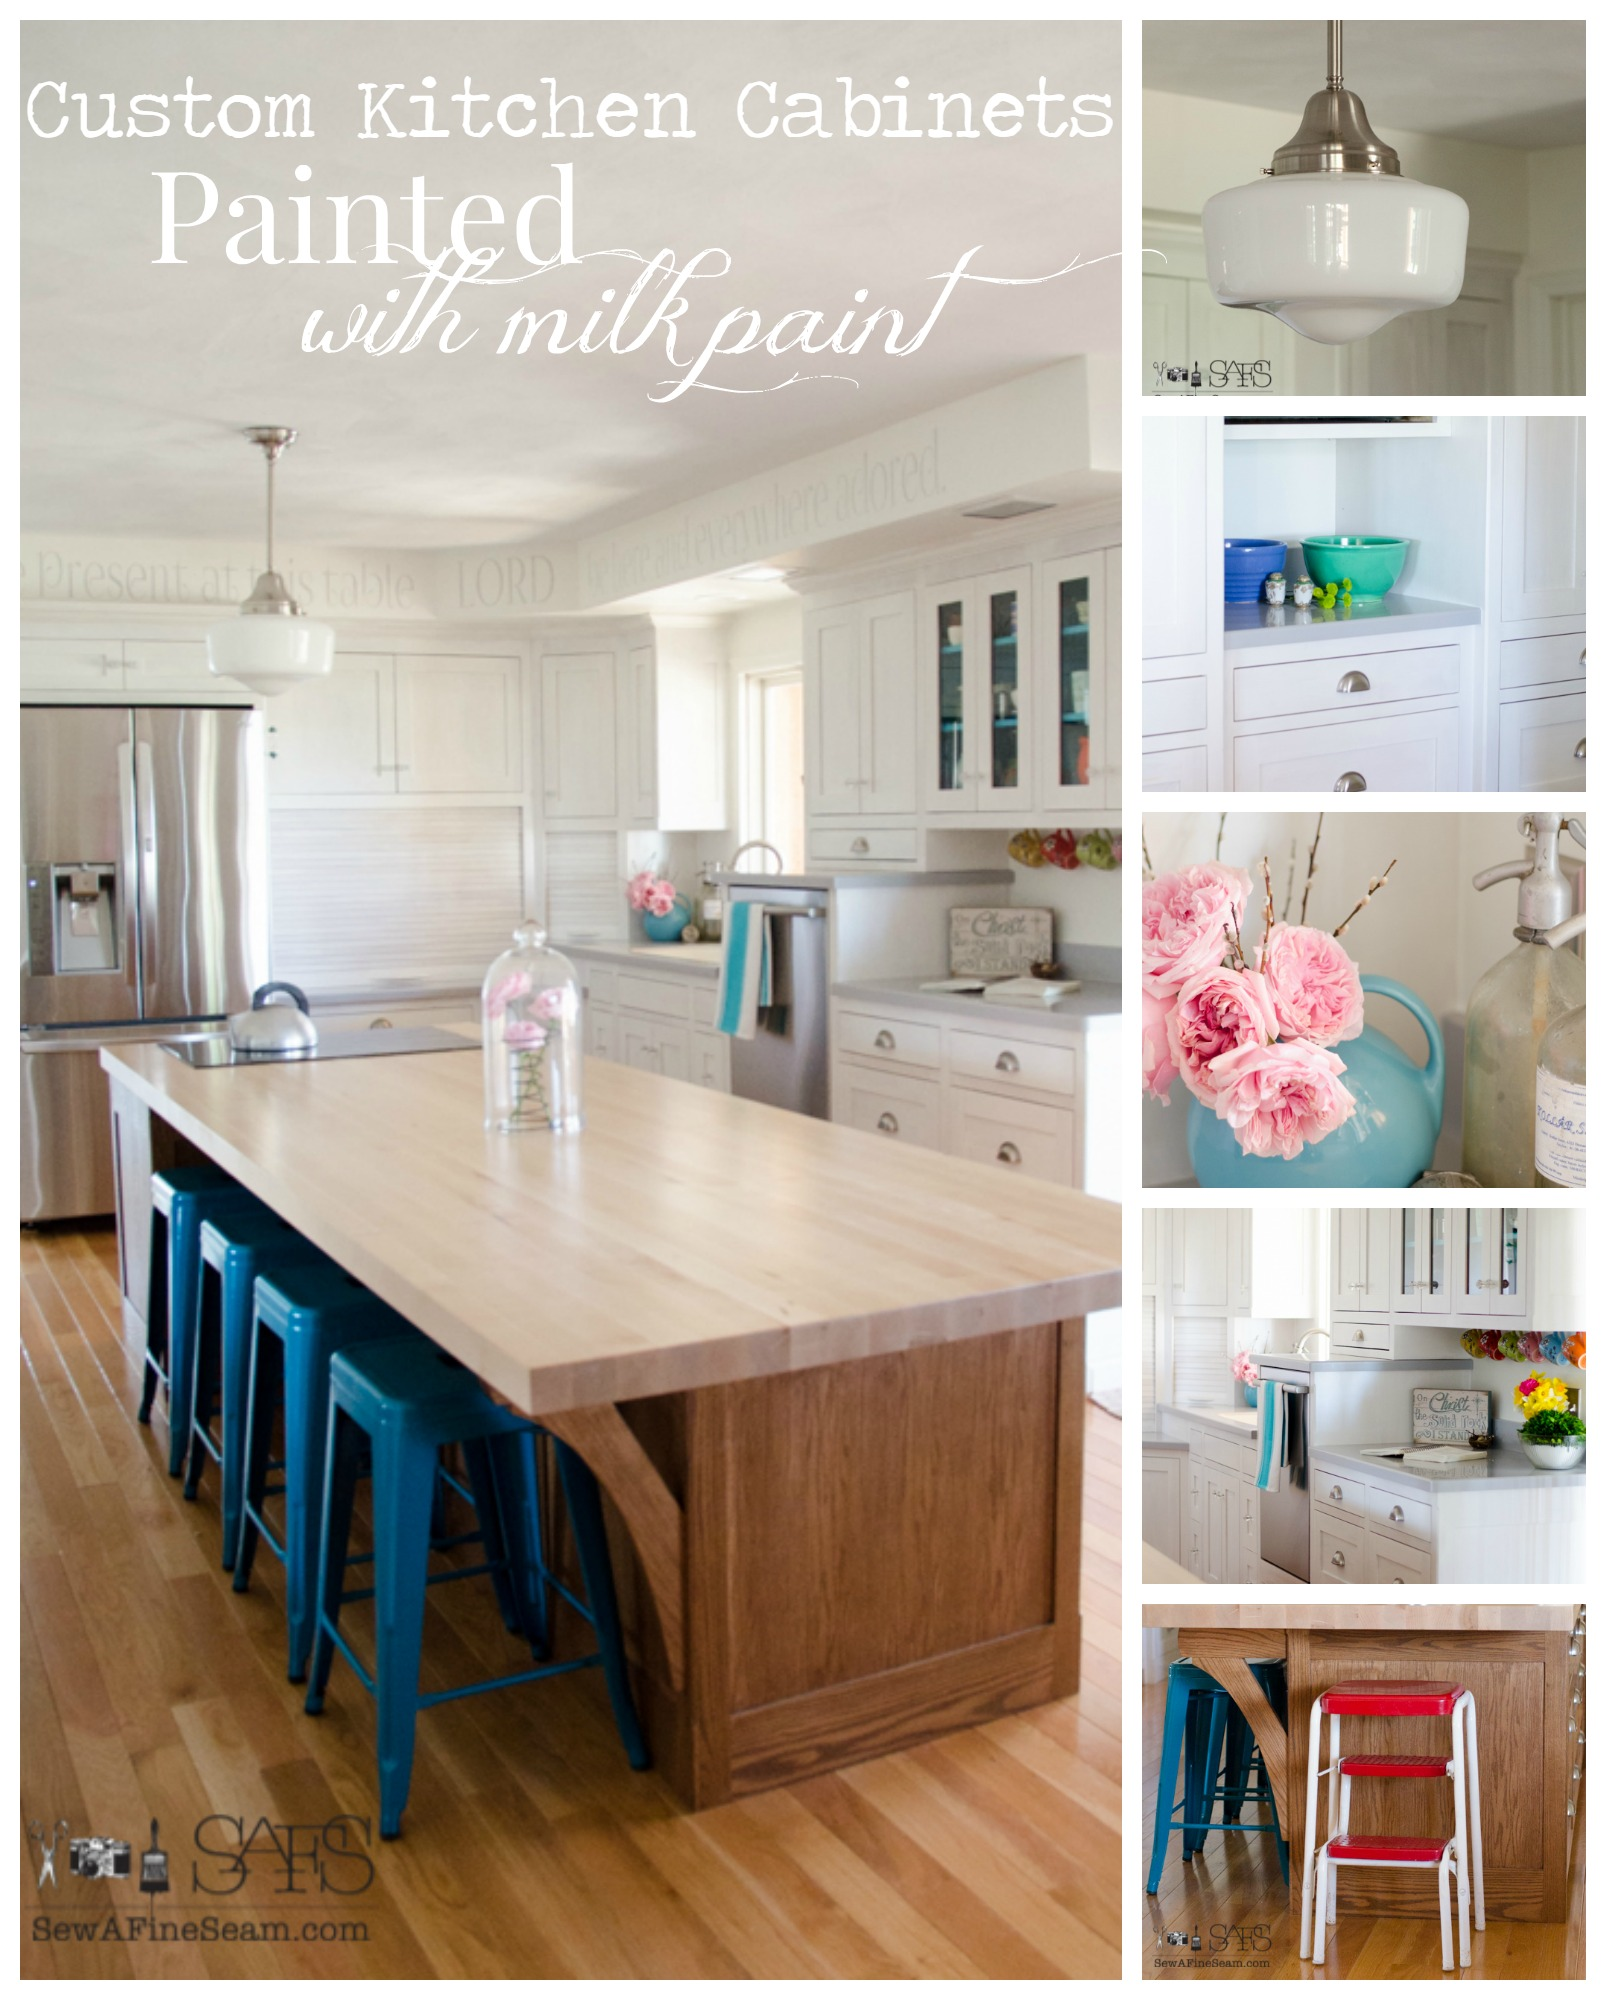 Lovely milk paint on custom kitchen cabinets